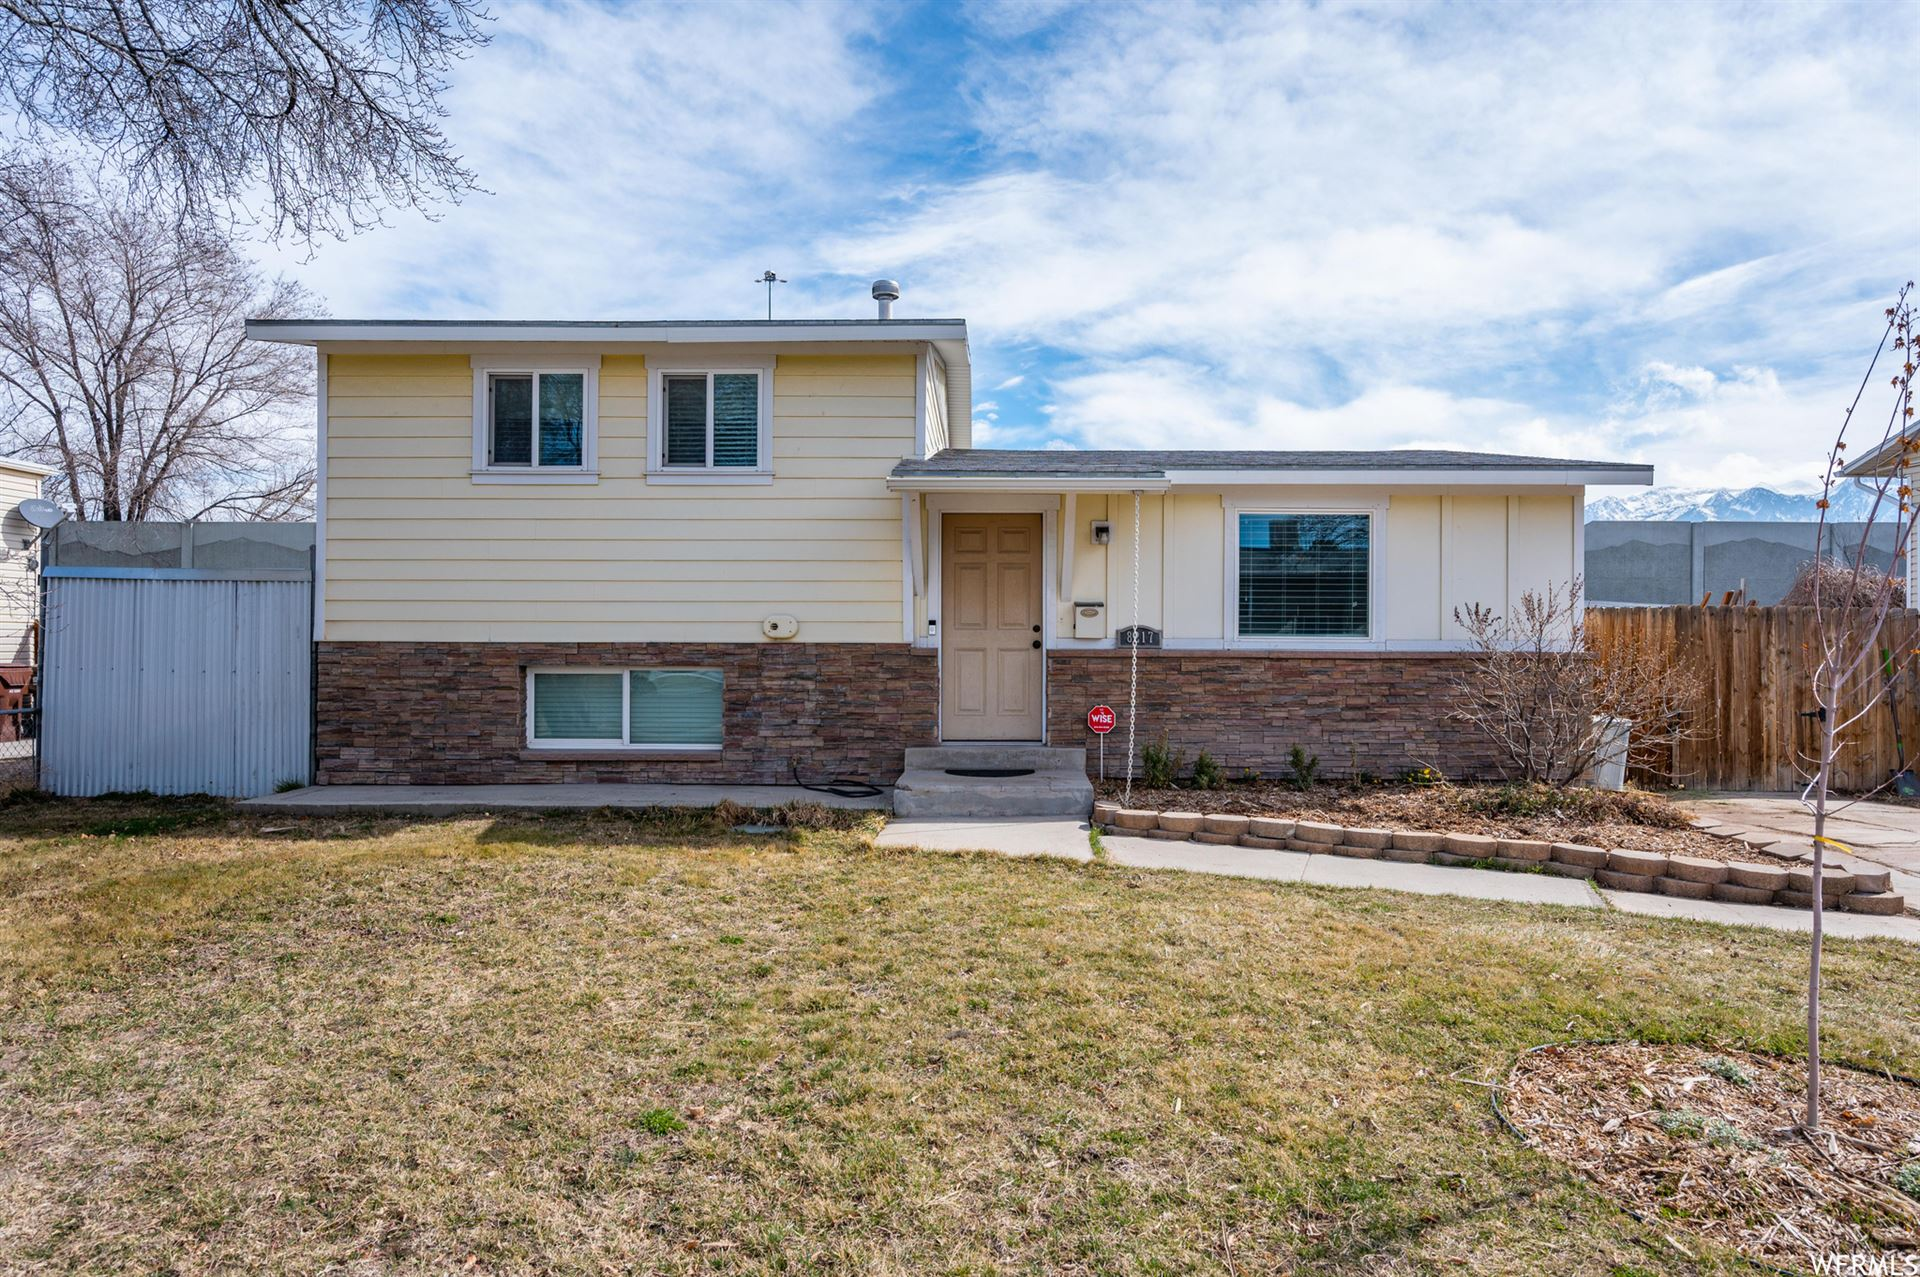 Photo of 8217 S IVY DR, Midvale, UT 84047 (MLS # 1729722)